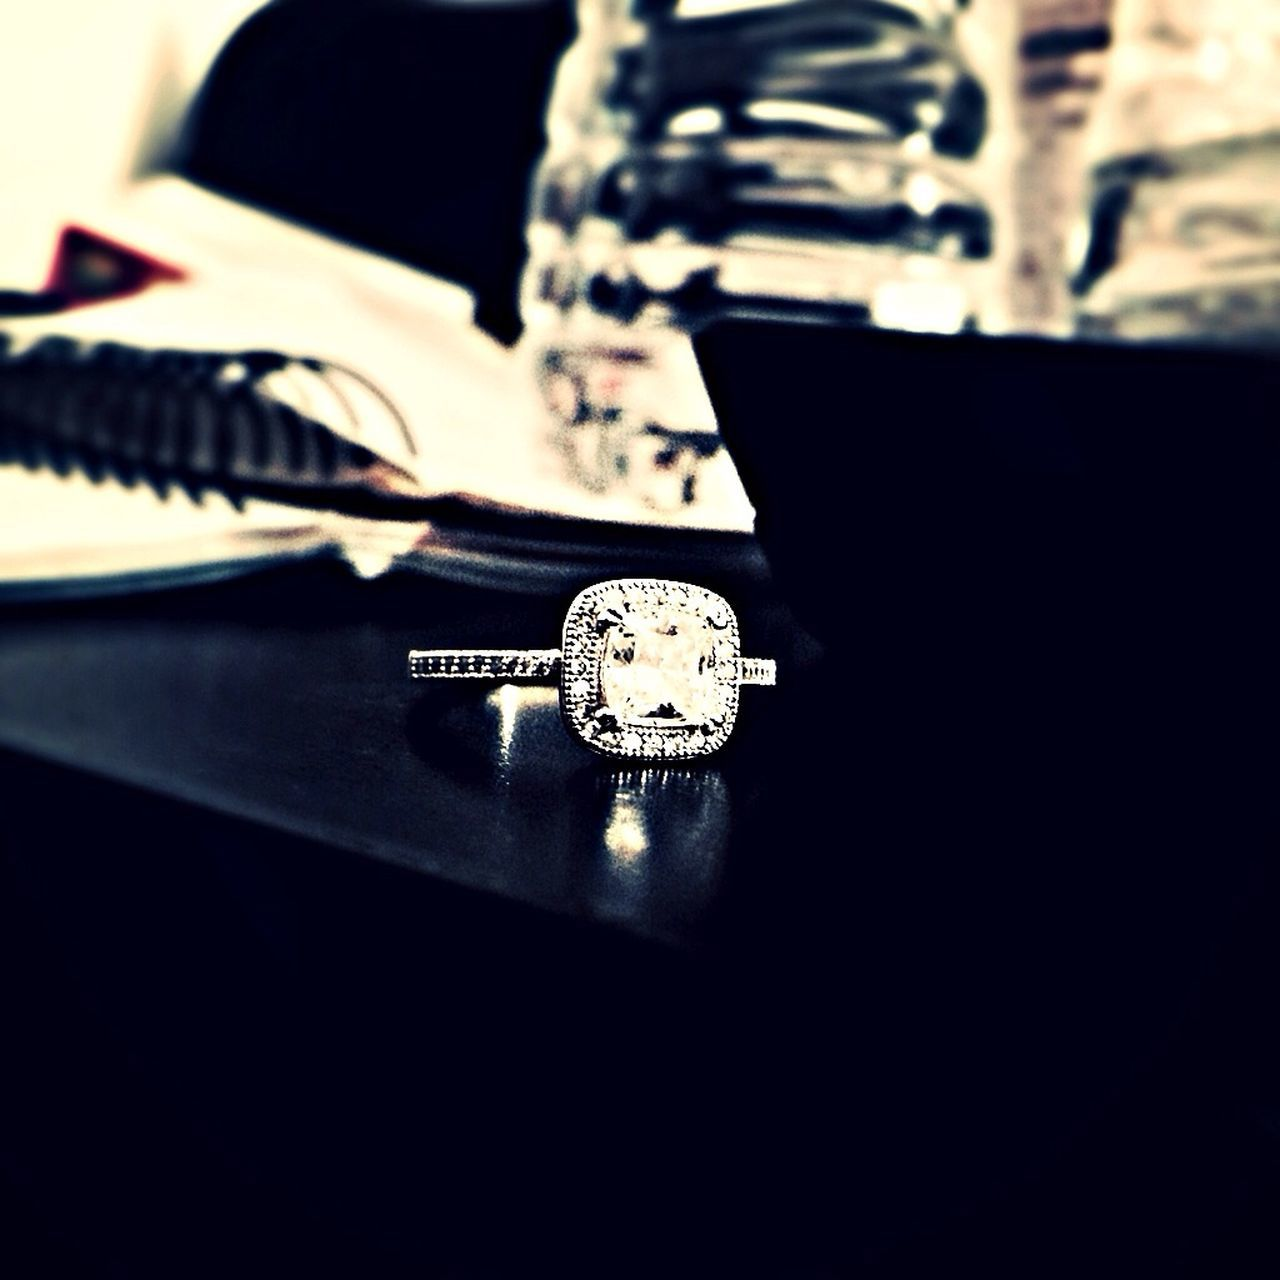 I woke up an turned my camera on my engagement ring Taking Photos IPhoneography Rings Jewelry